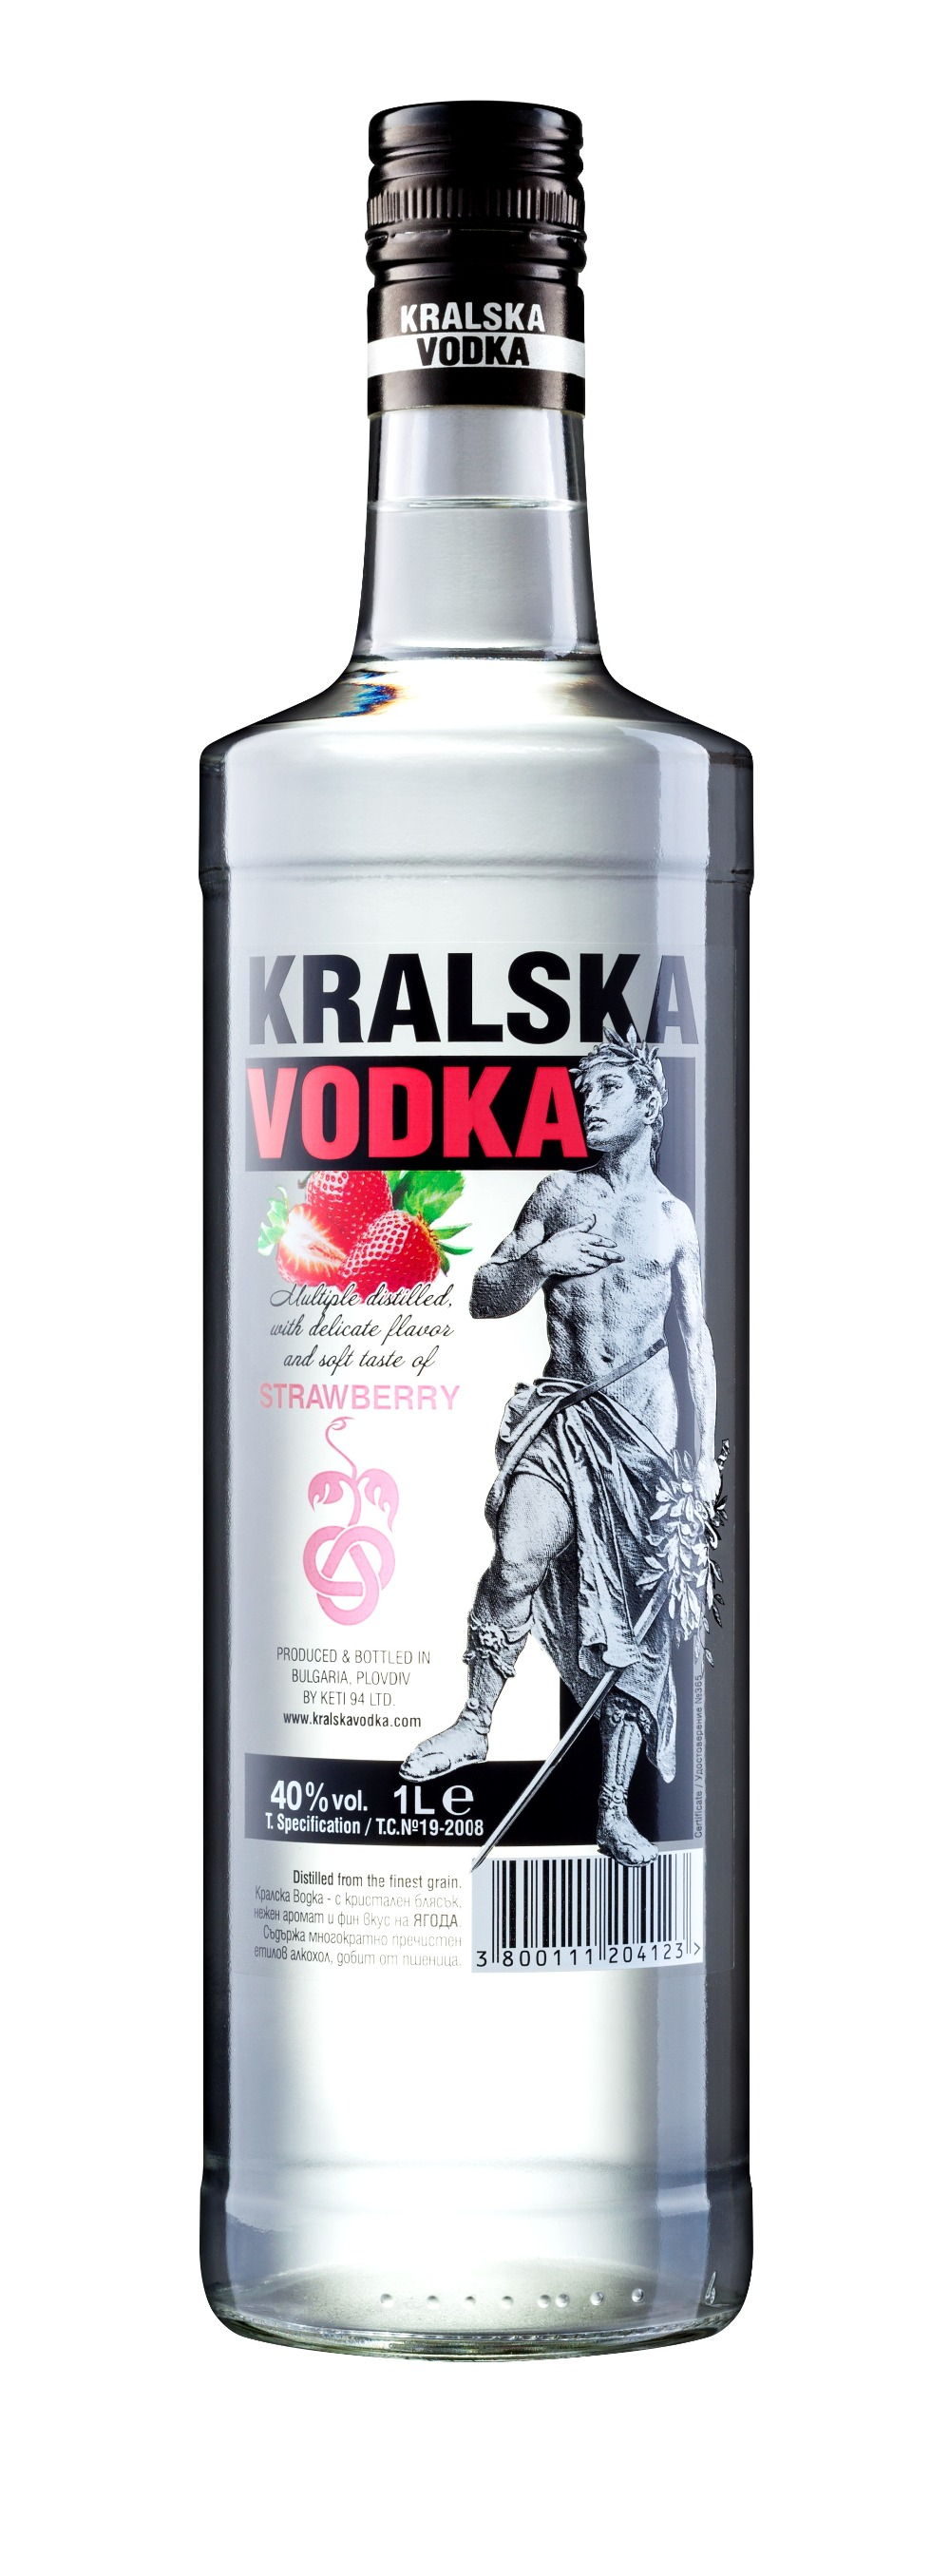 Vodka - Strawberry Flavored - 40% Abv - 1l. - Buy Flavored Vodka,Vodka ...